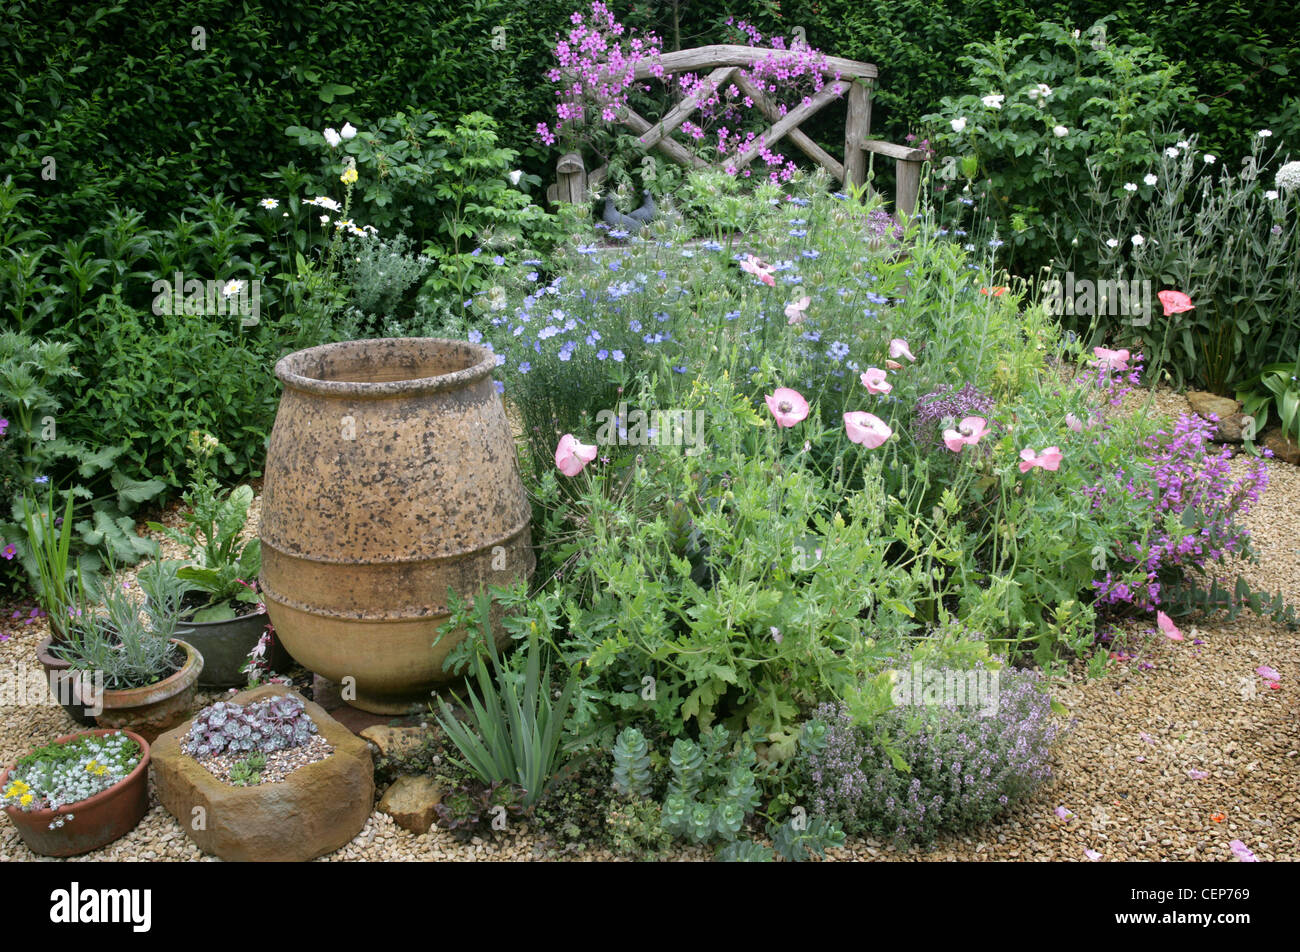 Stock Photo   Summer Garden Gravel, Pink Poppies, Large Terracotta Pot,  Potted Plants And Wood Bench In Background, Wardhurst, East Sussex